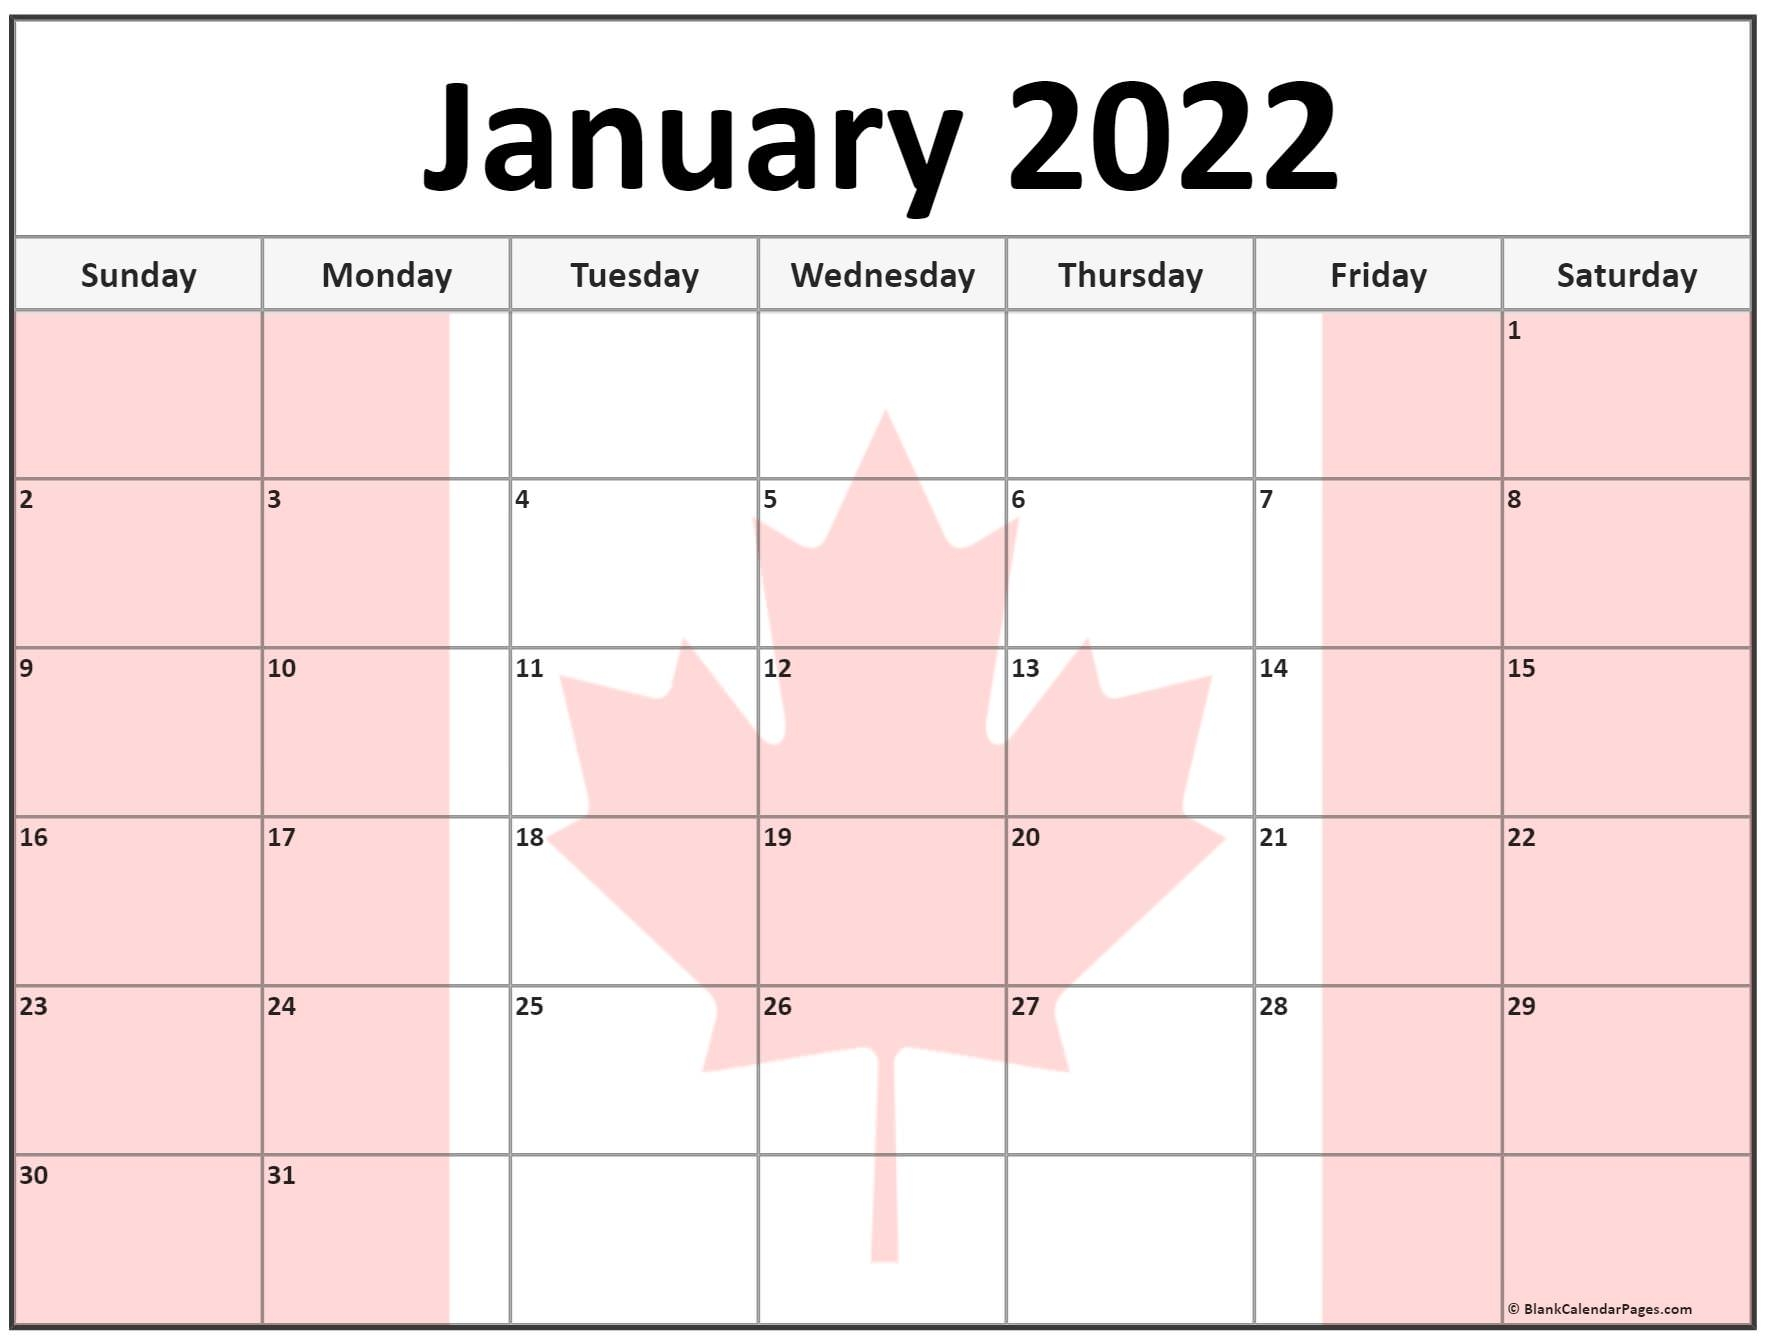 collection of january 2022 photo calendars with image filters::January 2022 calendar with holidays printable